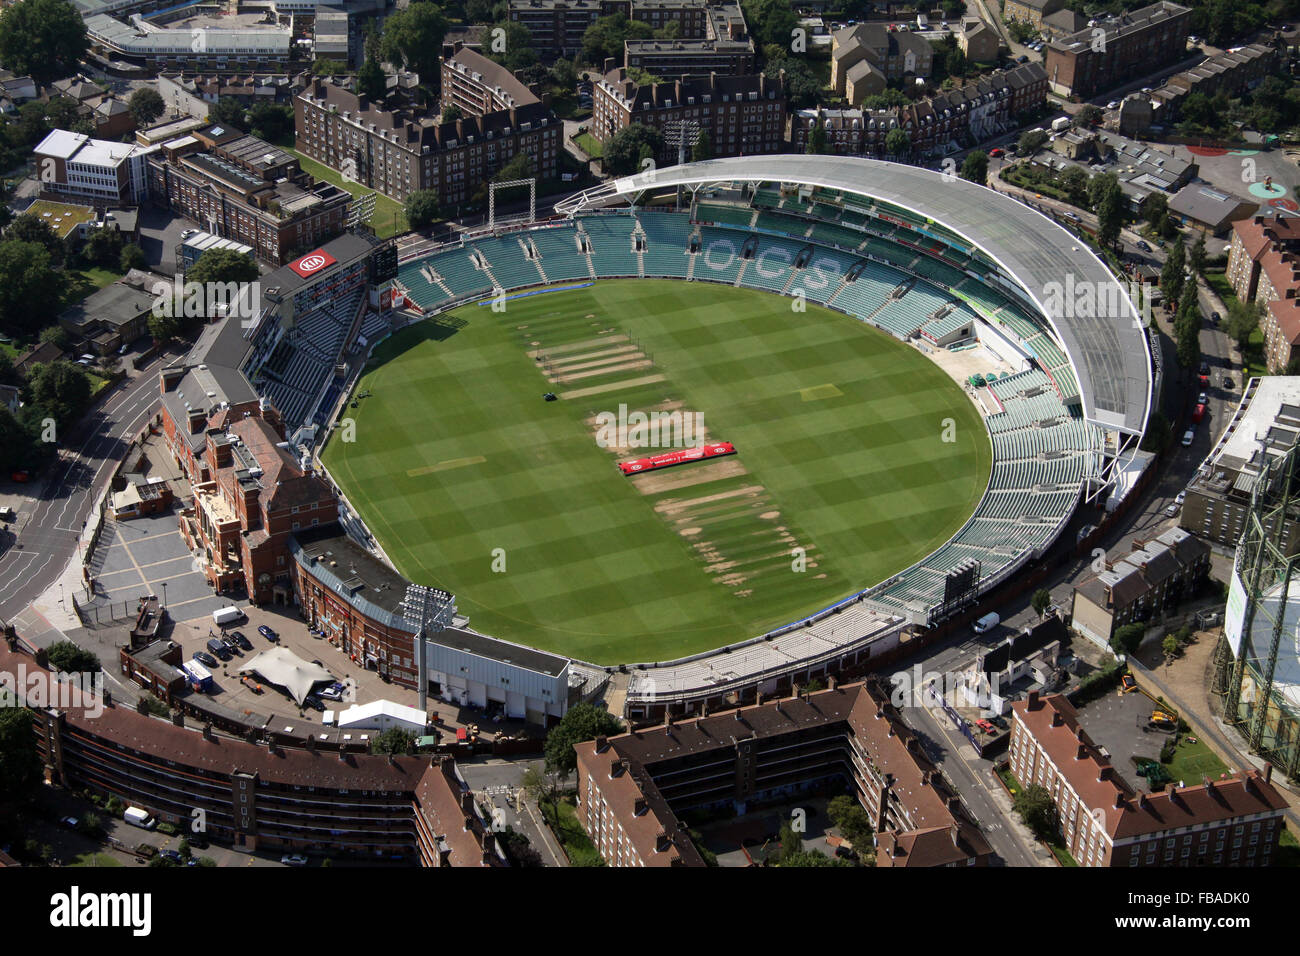 aerial view of the Kia Oval cricket ground in London, UK - Stock Image